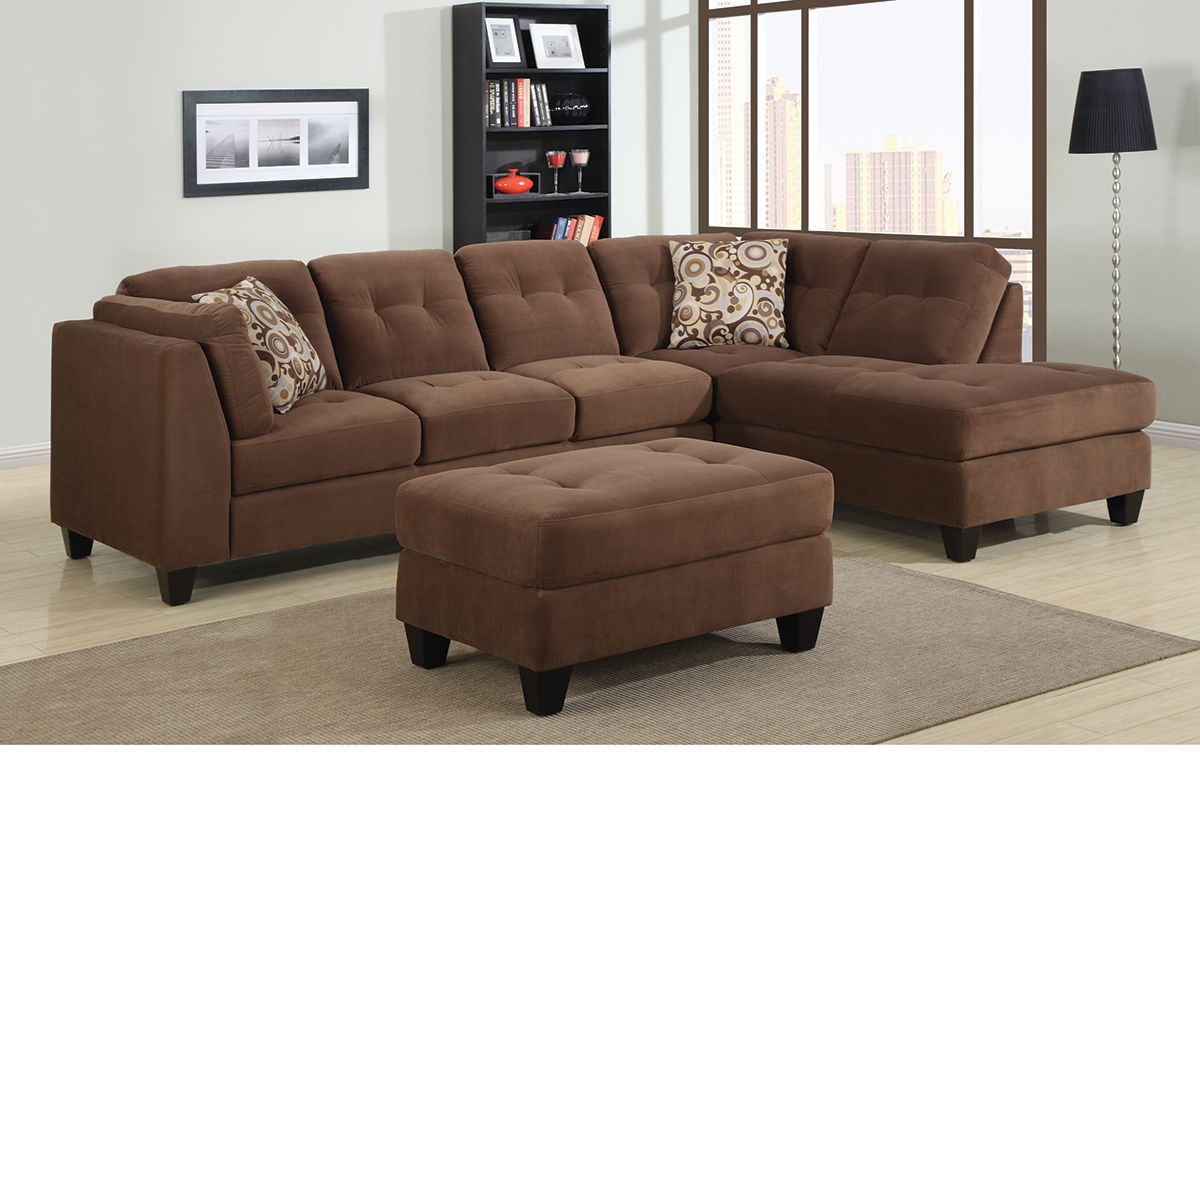 The Dump Furniture - BROWN CHAISE SECTIONAL